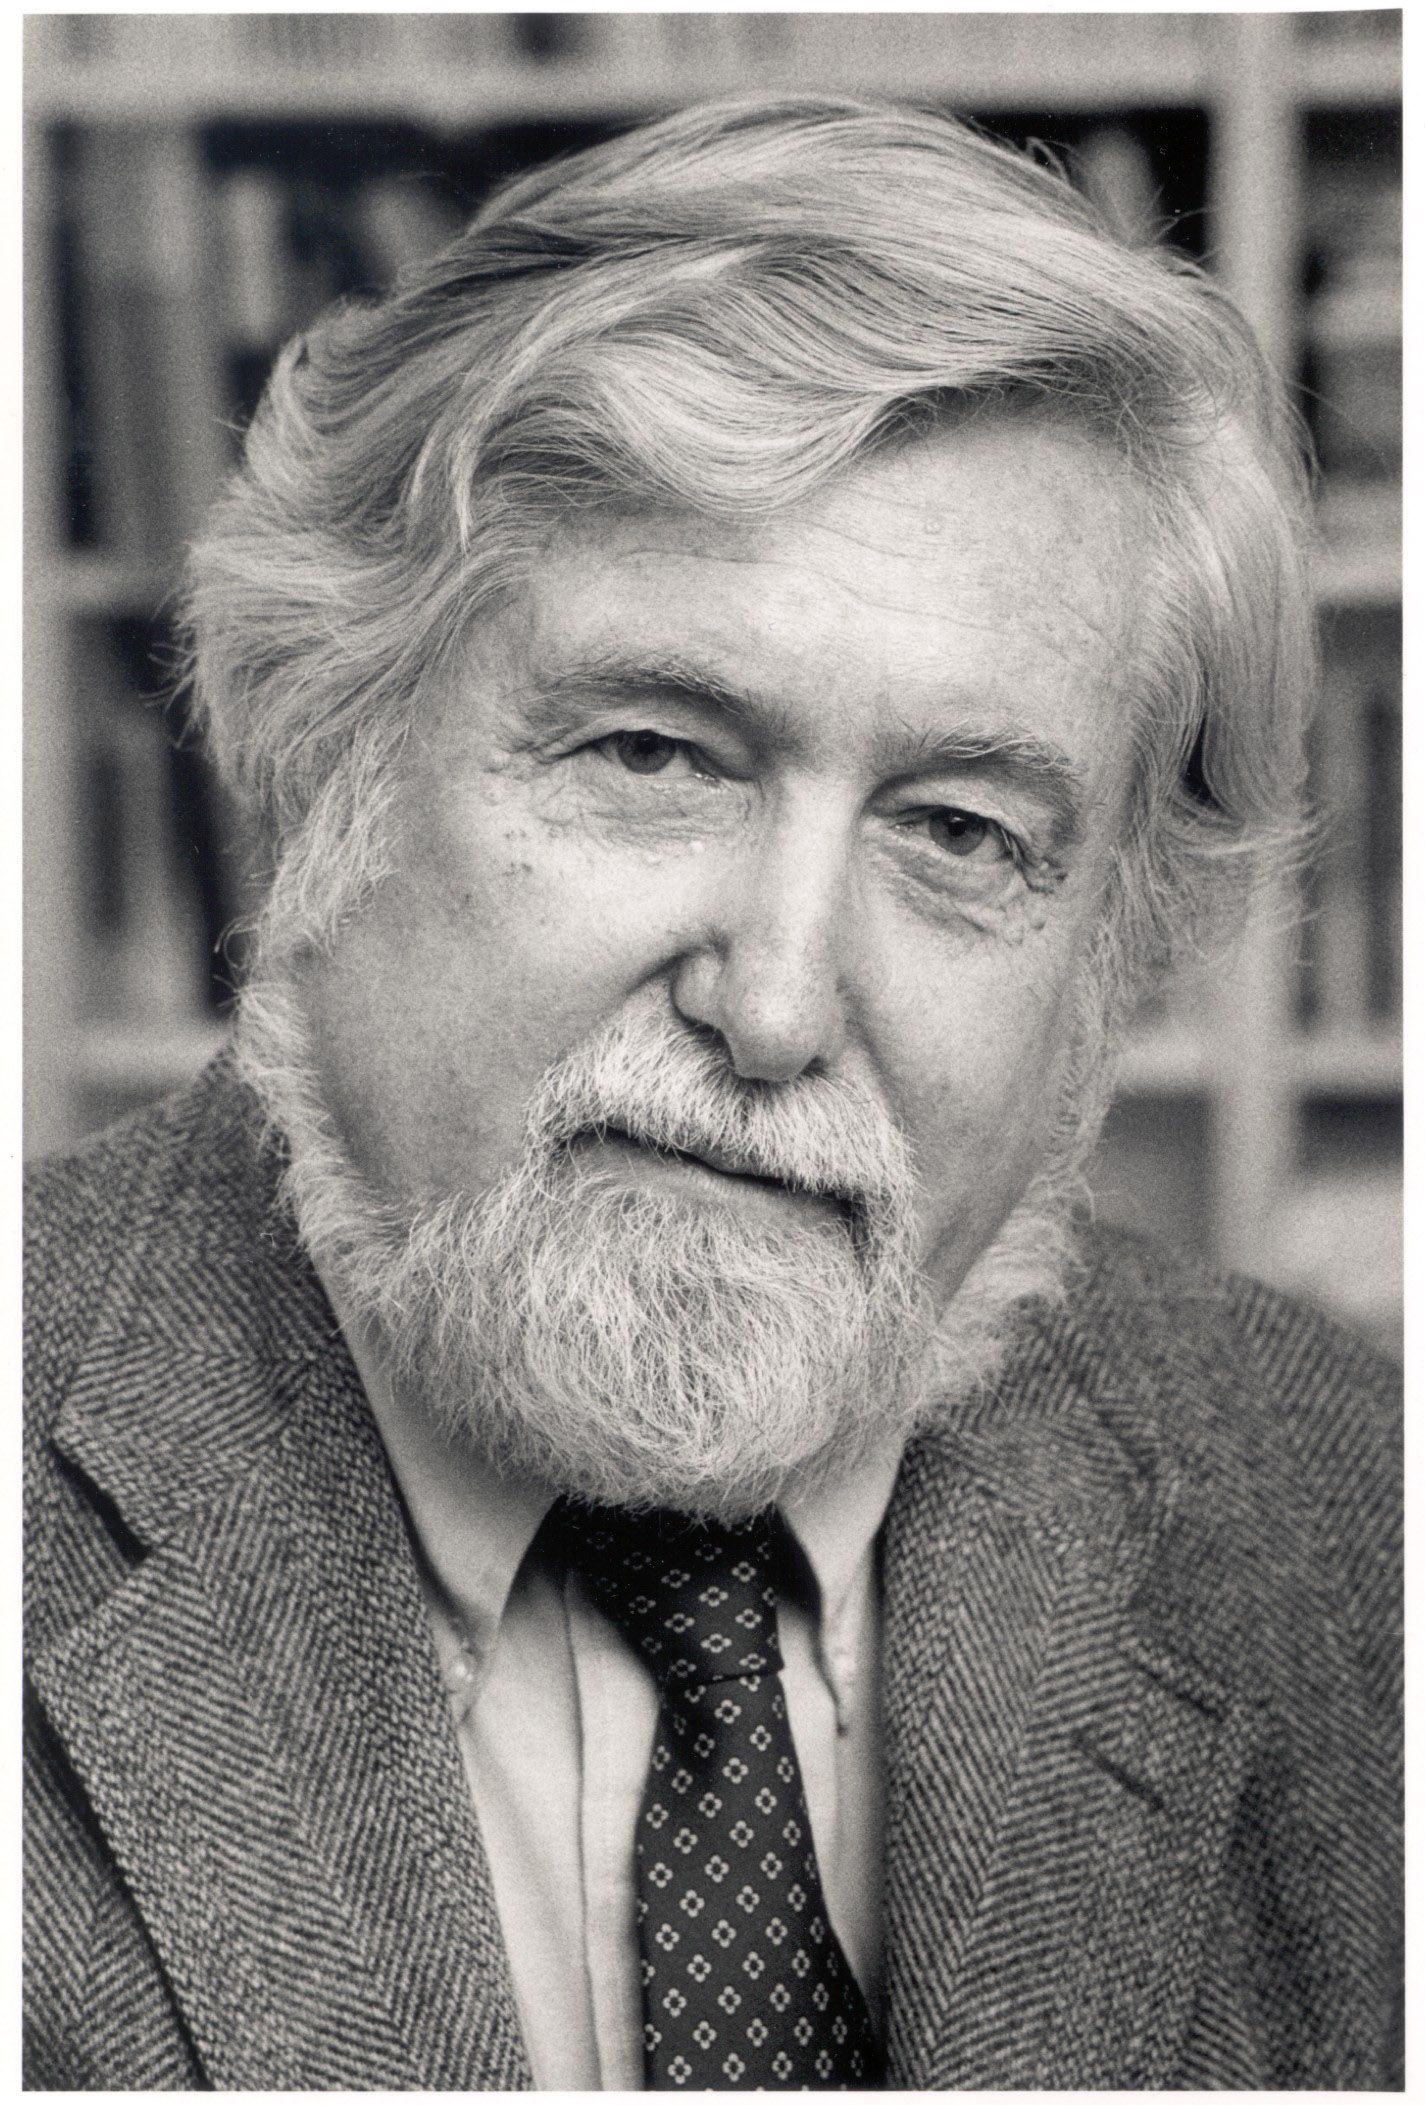 Clifford Geertz Symbolic Anthropology People Pinterest